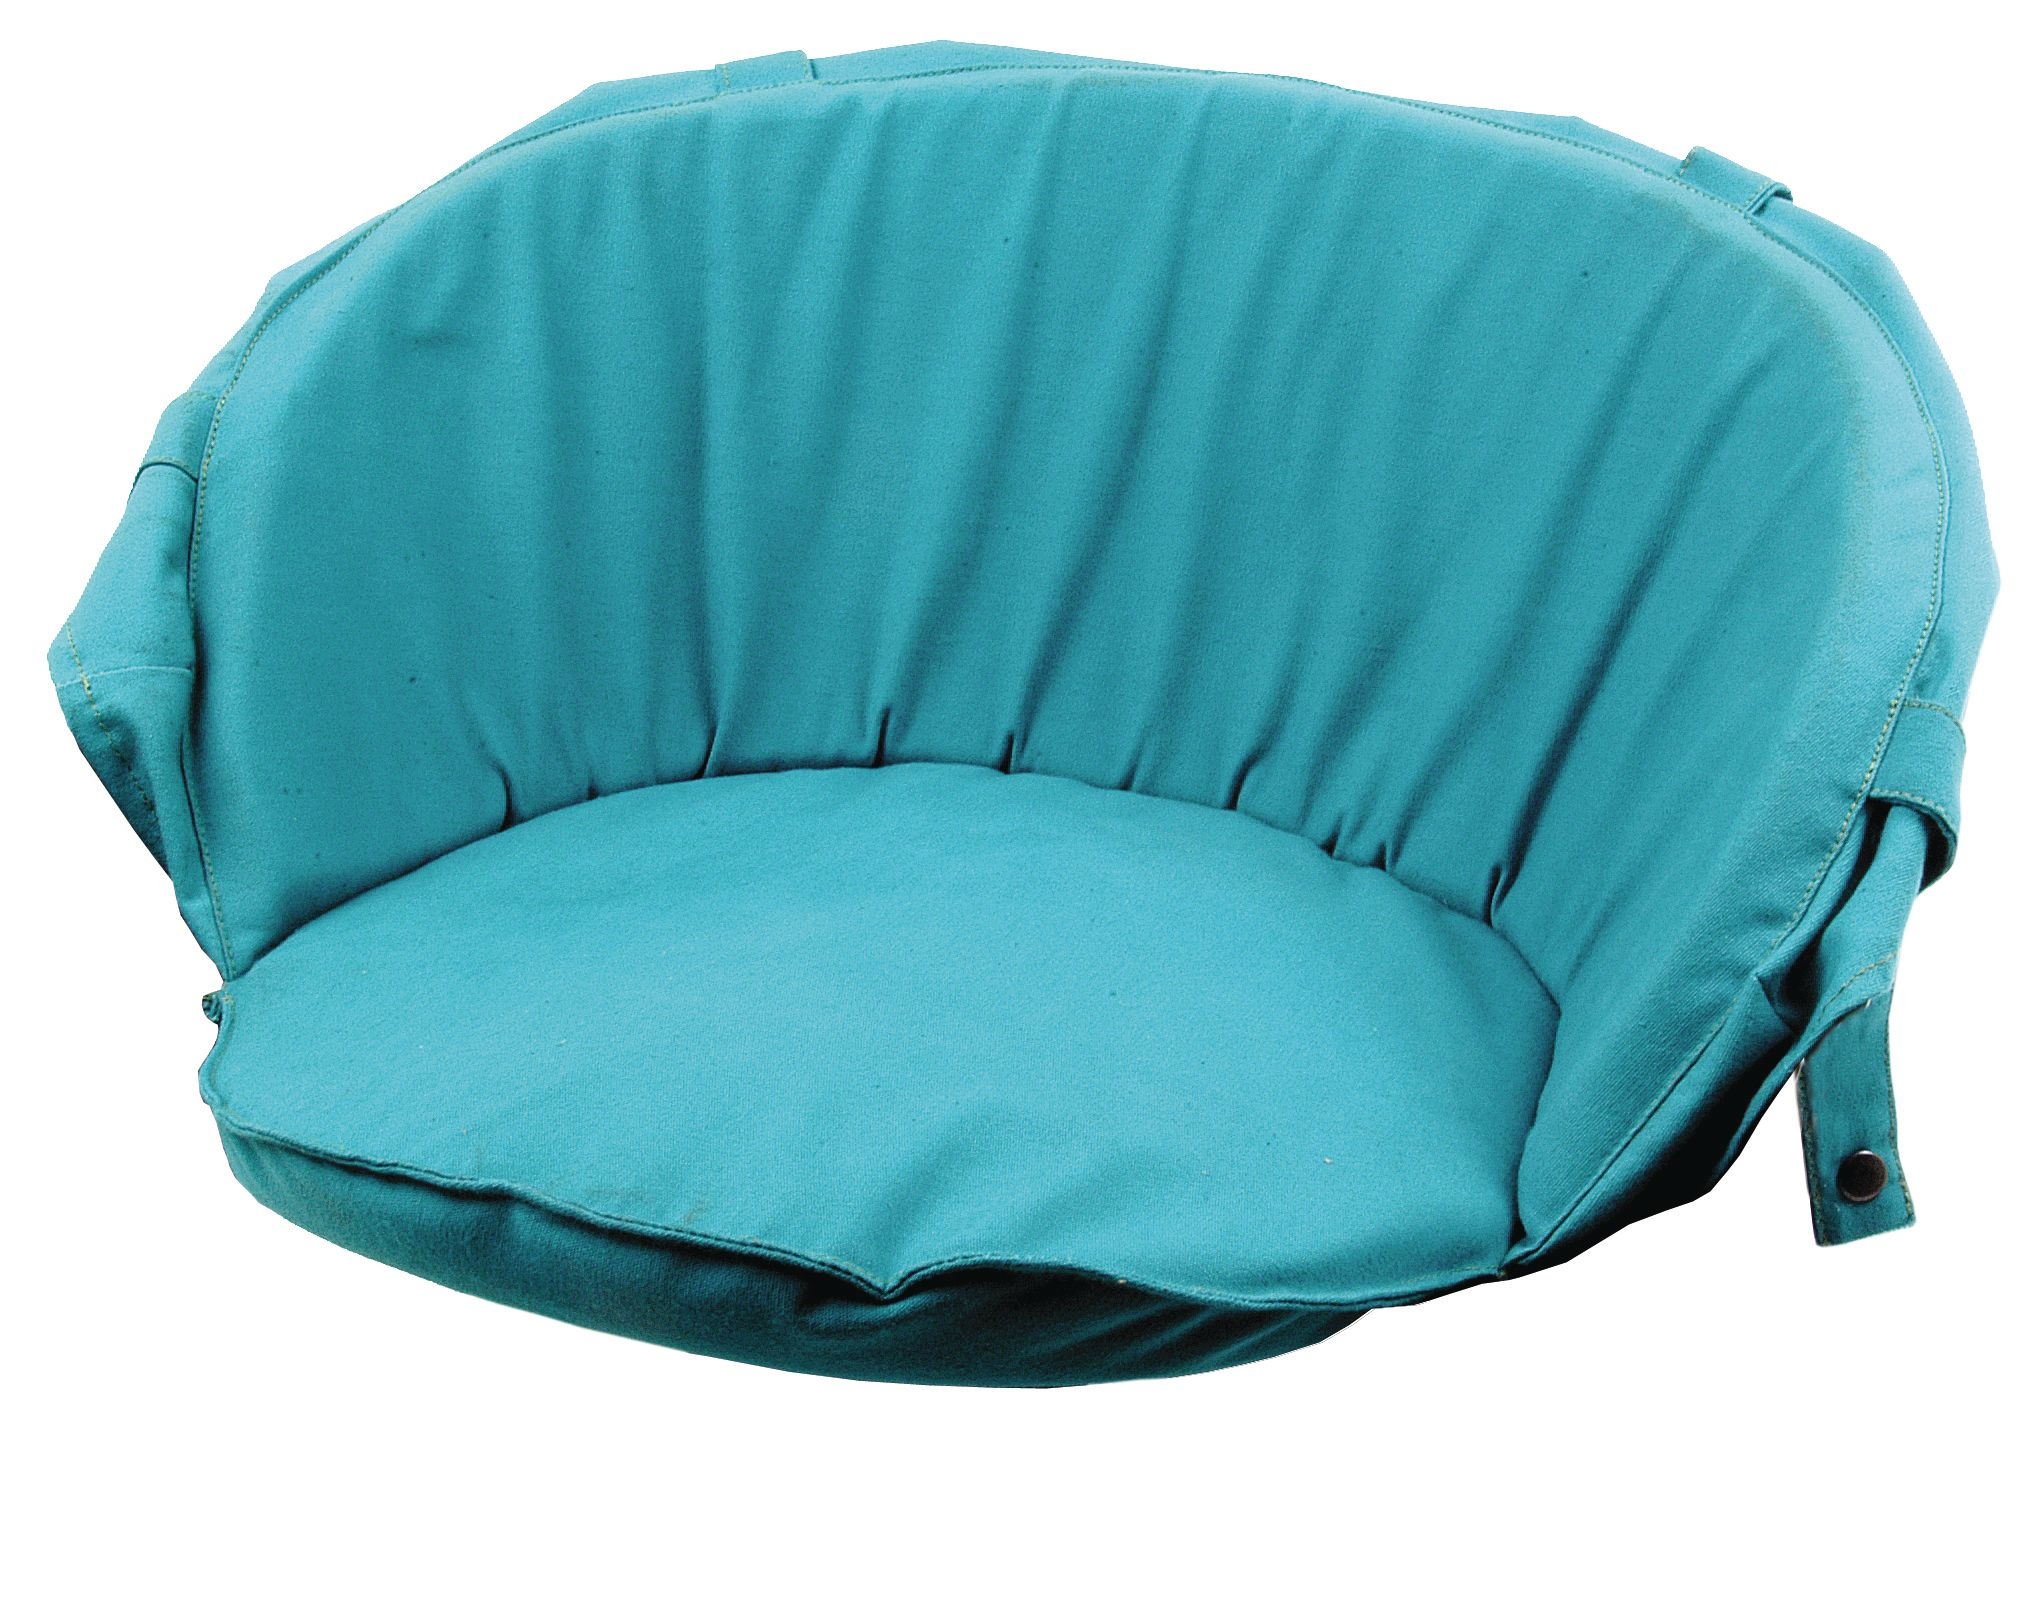 NUFFIELD SEAT CUSHION-NUFFIELD